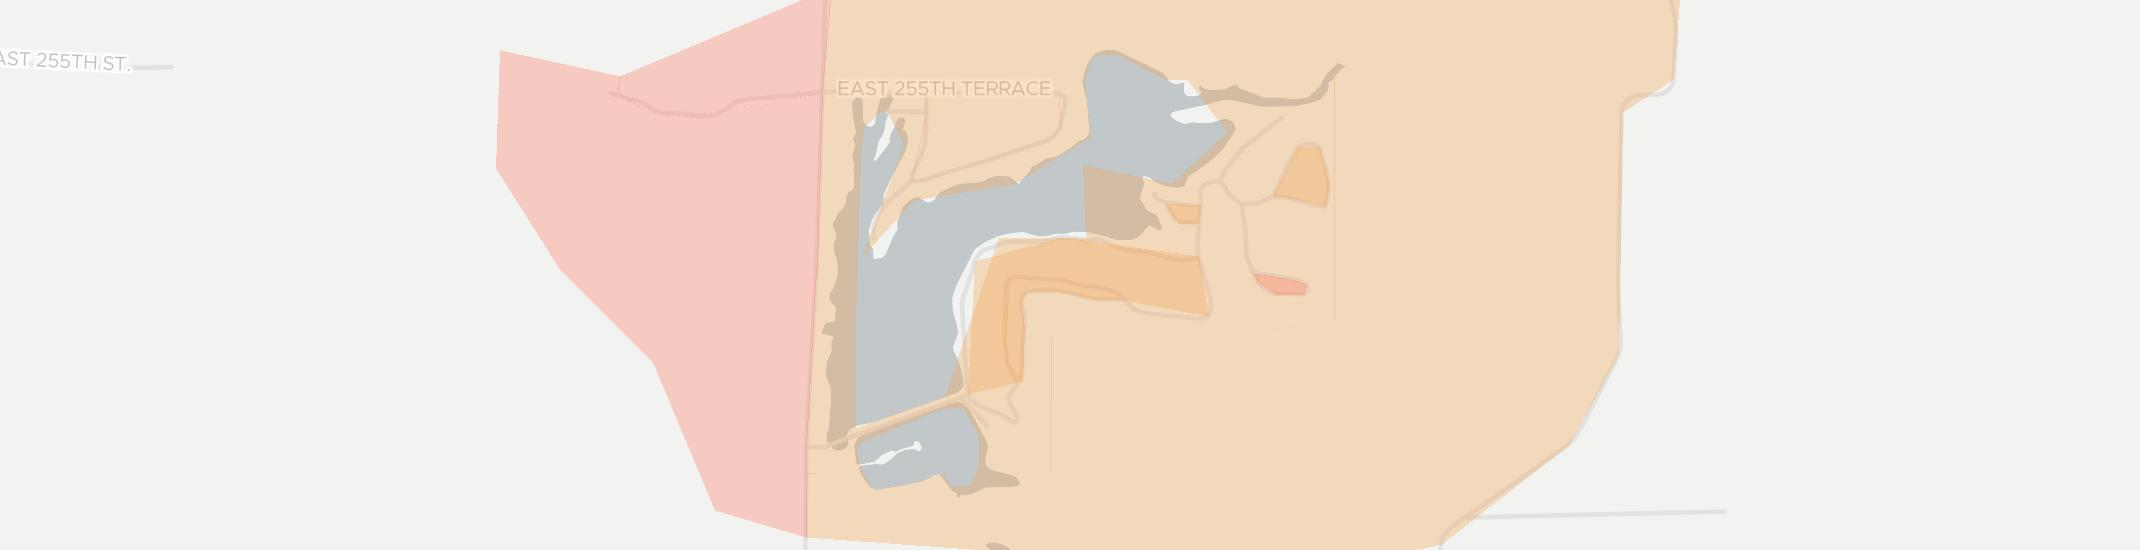 Lake Annette Internet Competition Map. Click for interactive map.